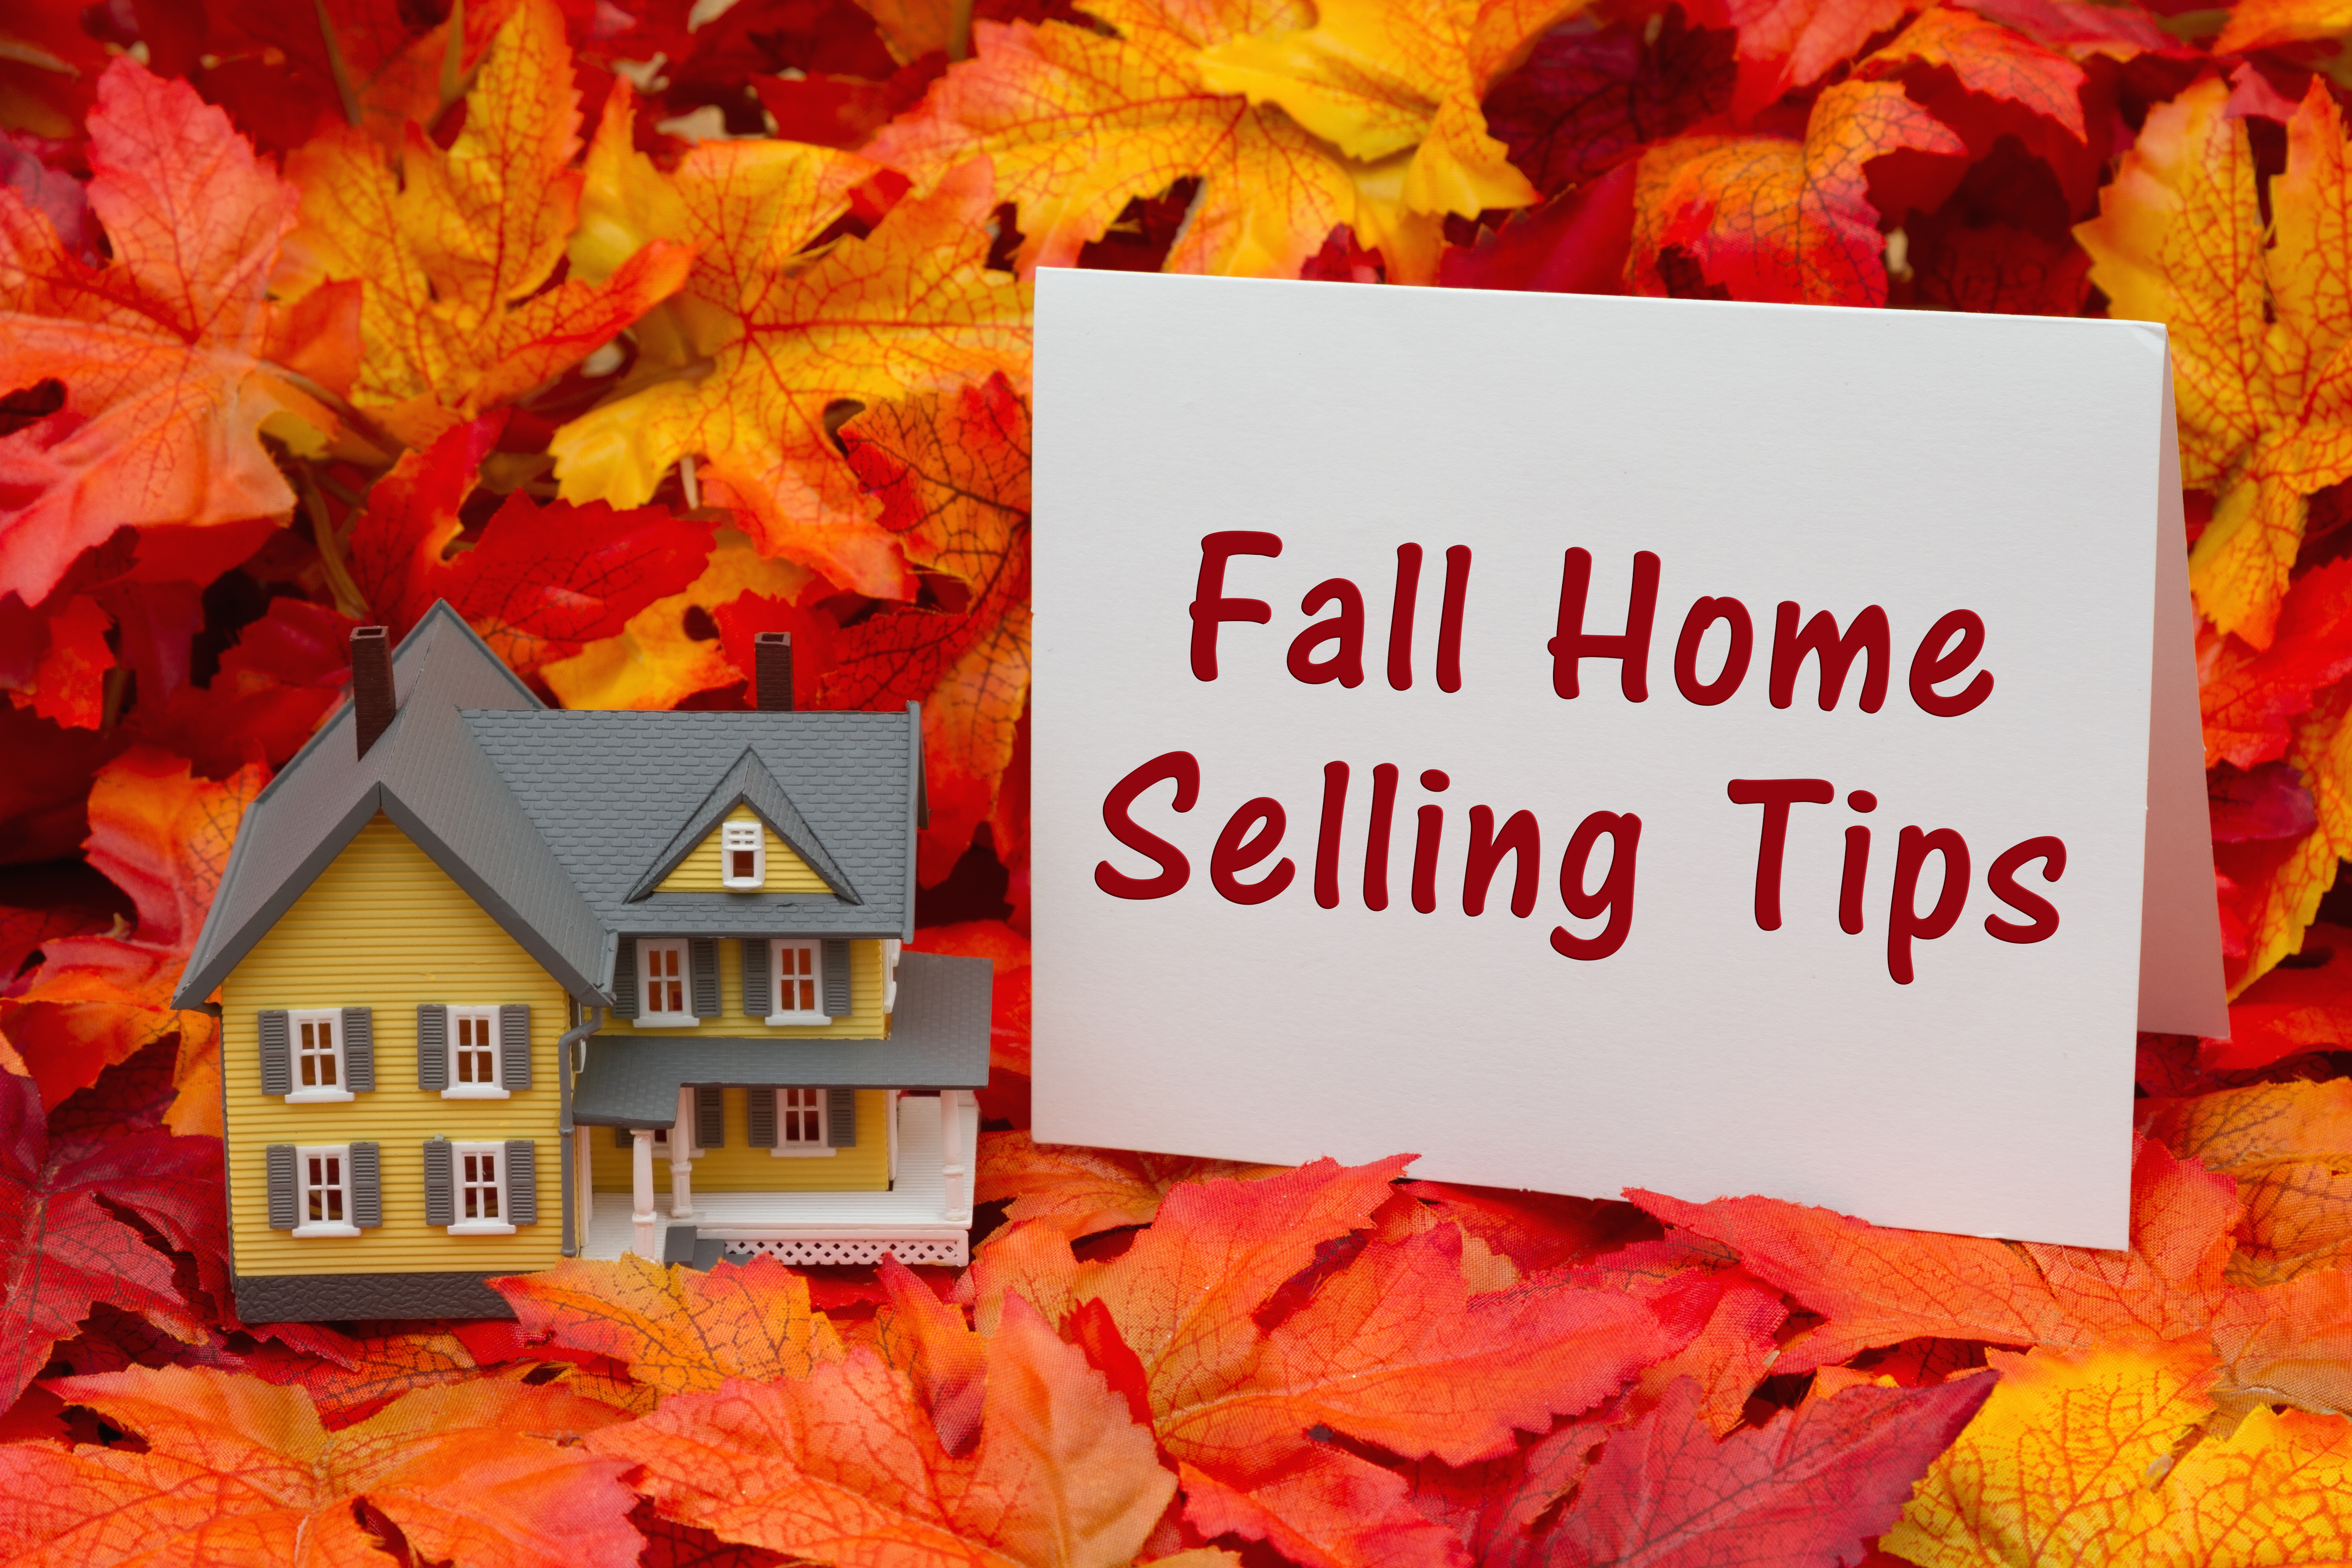 Tips For Selling Your Home In The Fall - The Richard Hopkinson Team